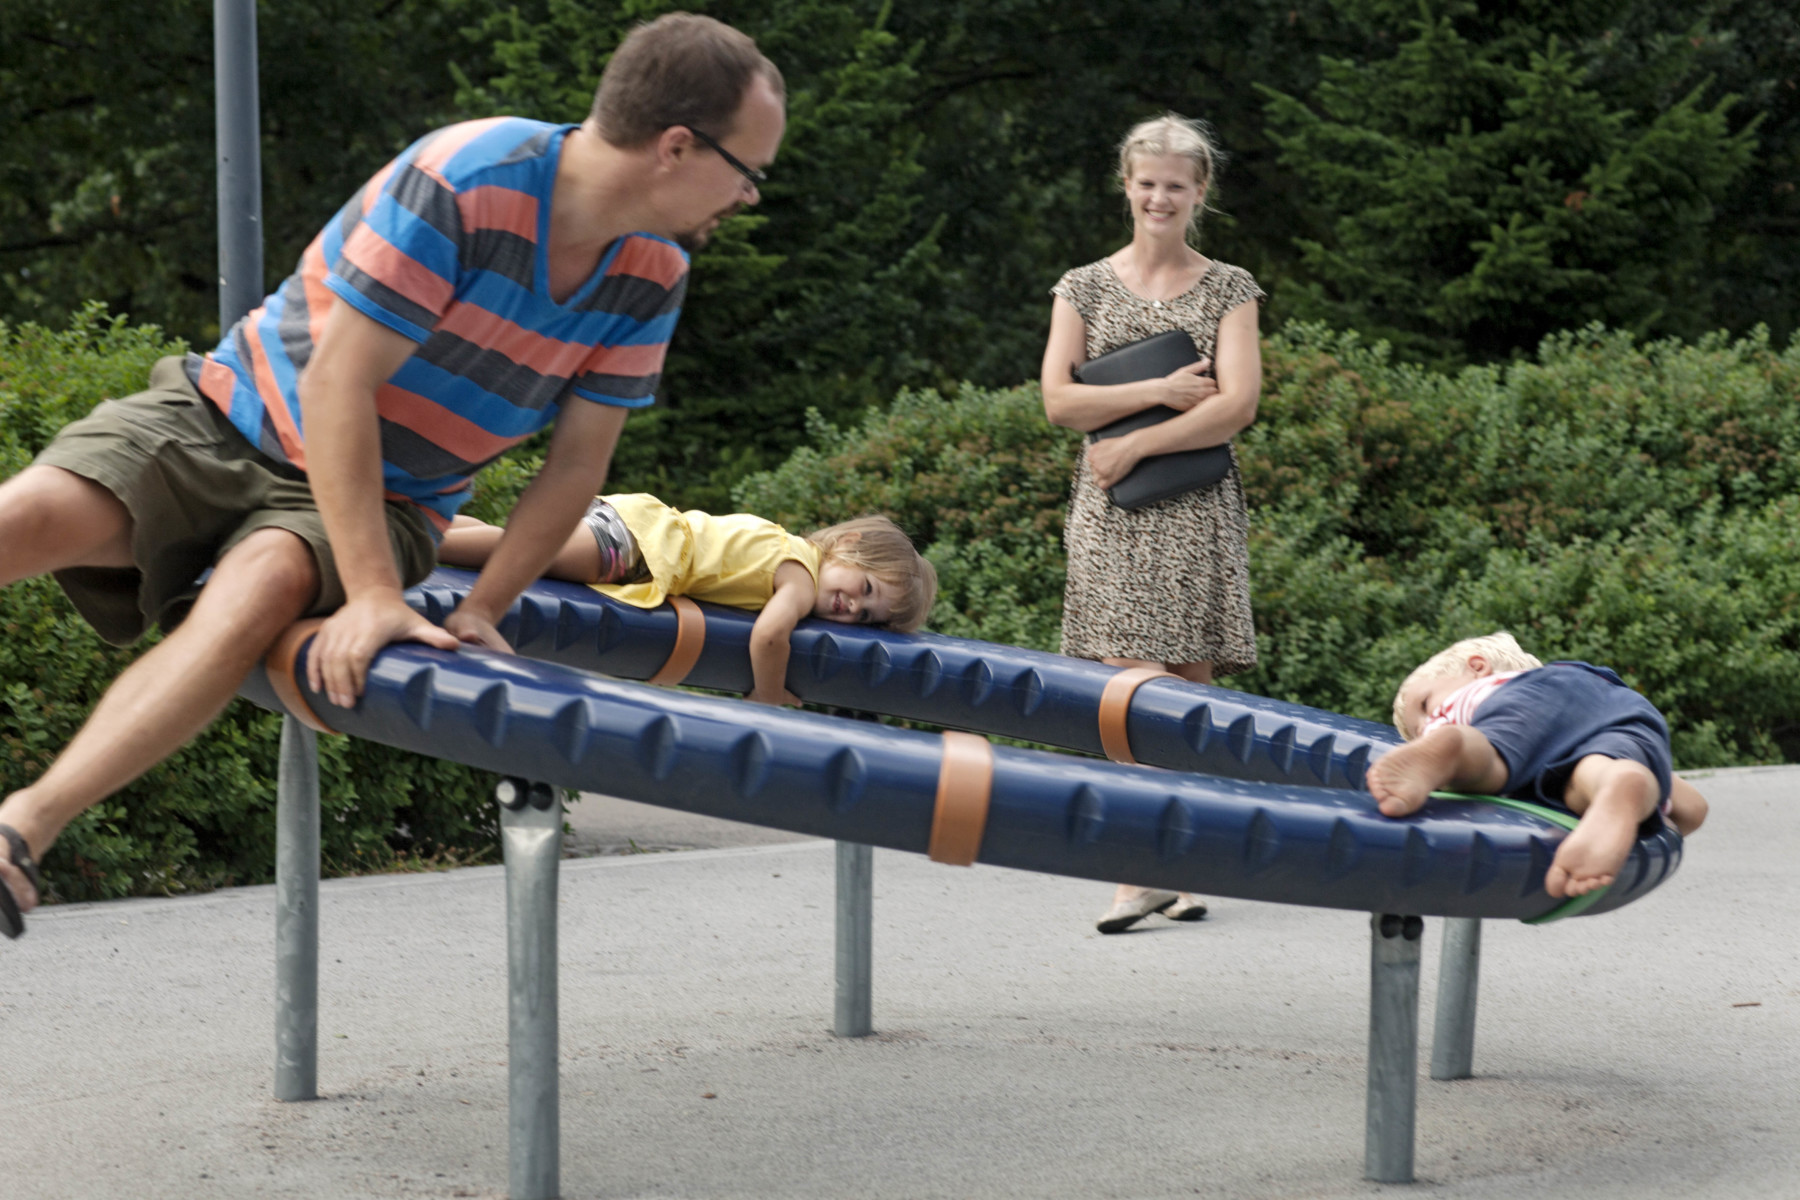 A family of four at the playground. The father plays with the two children